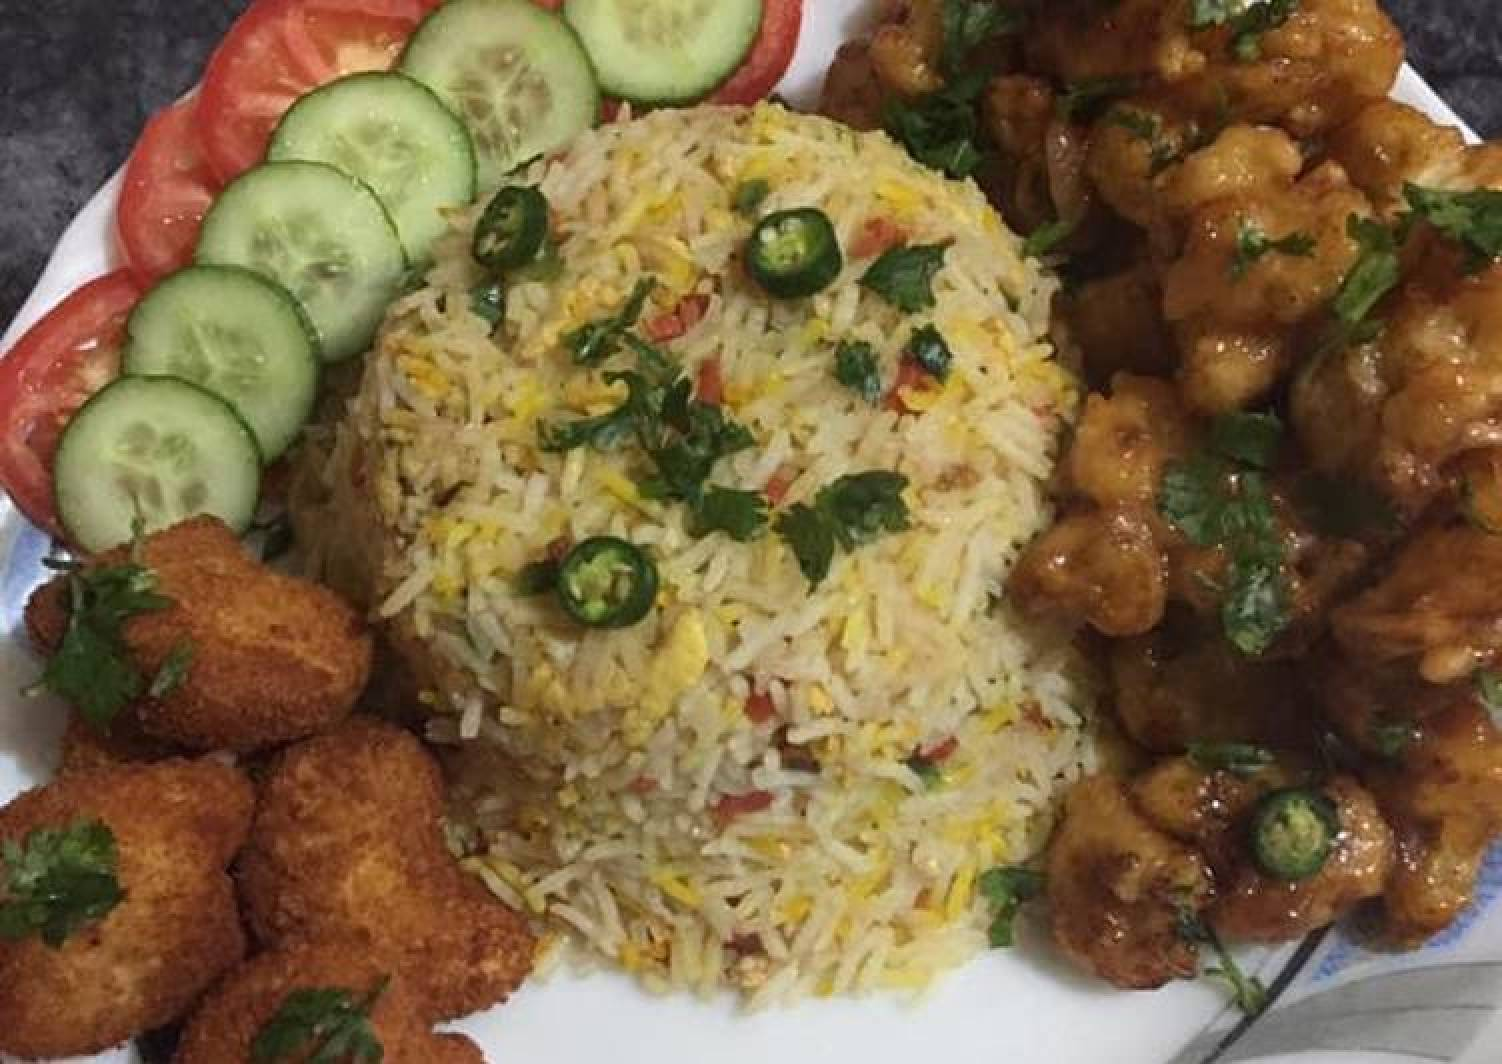 Gobi manchurian with vegetables rice and chicken nuggets